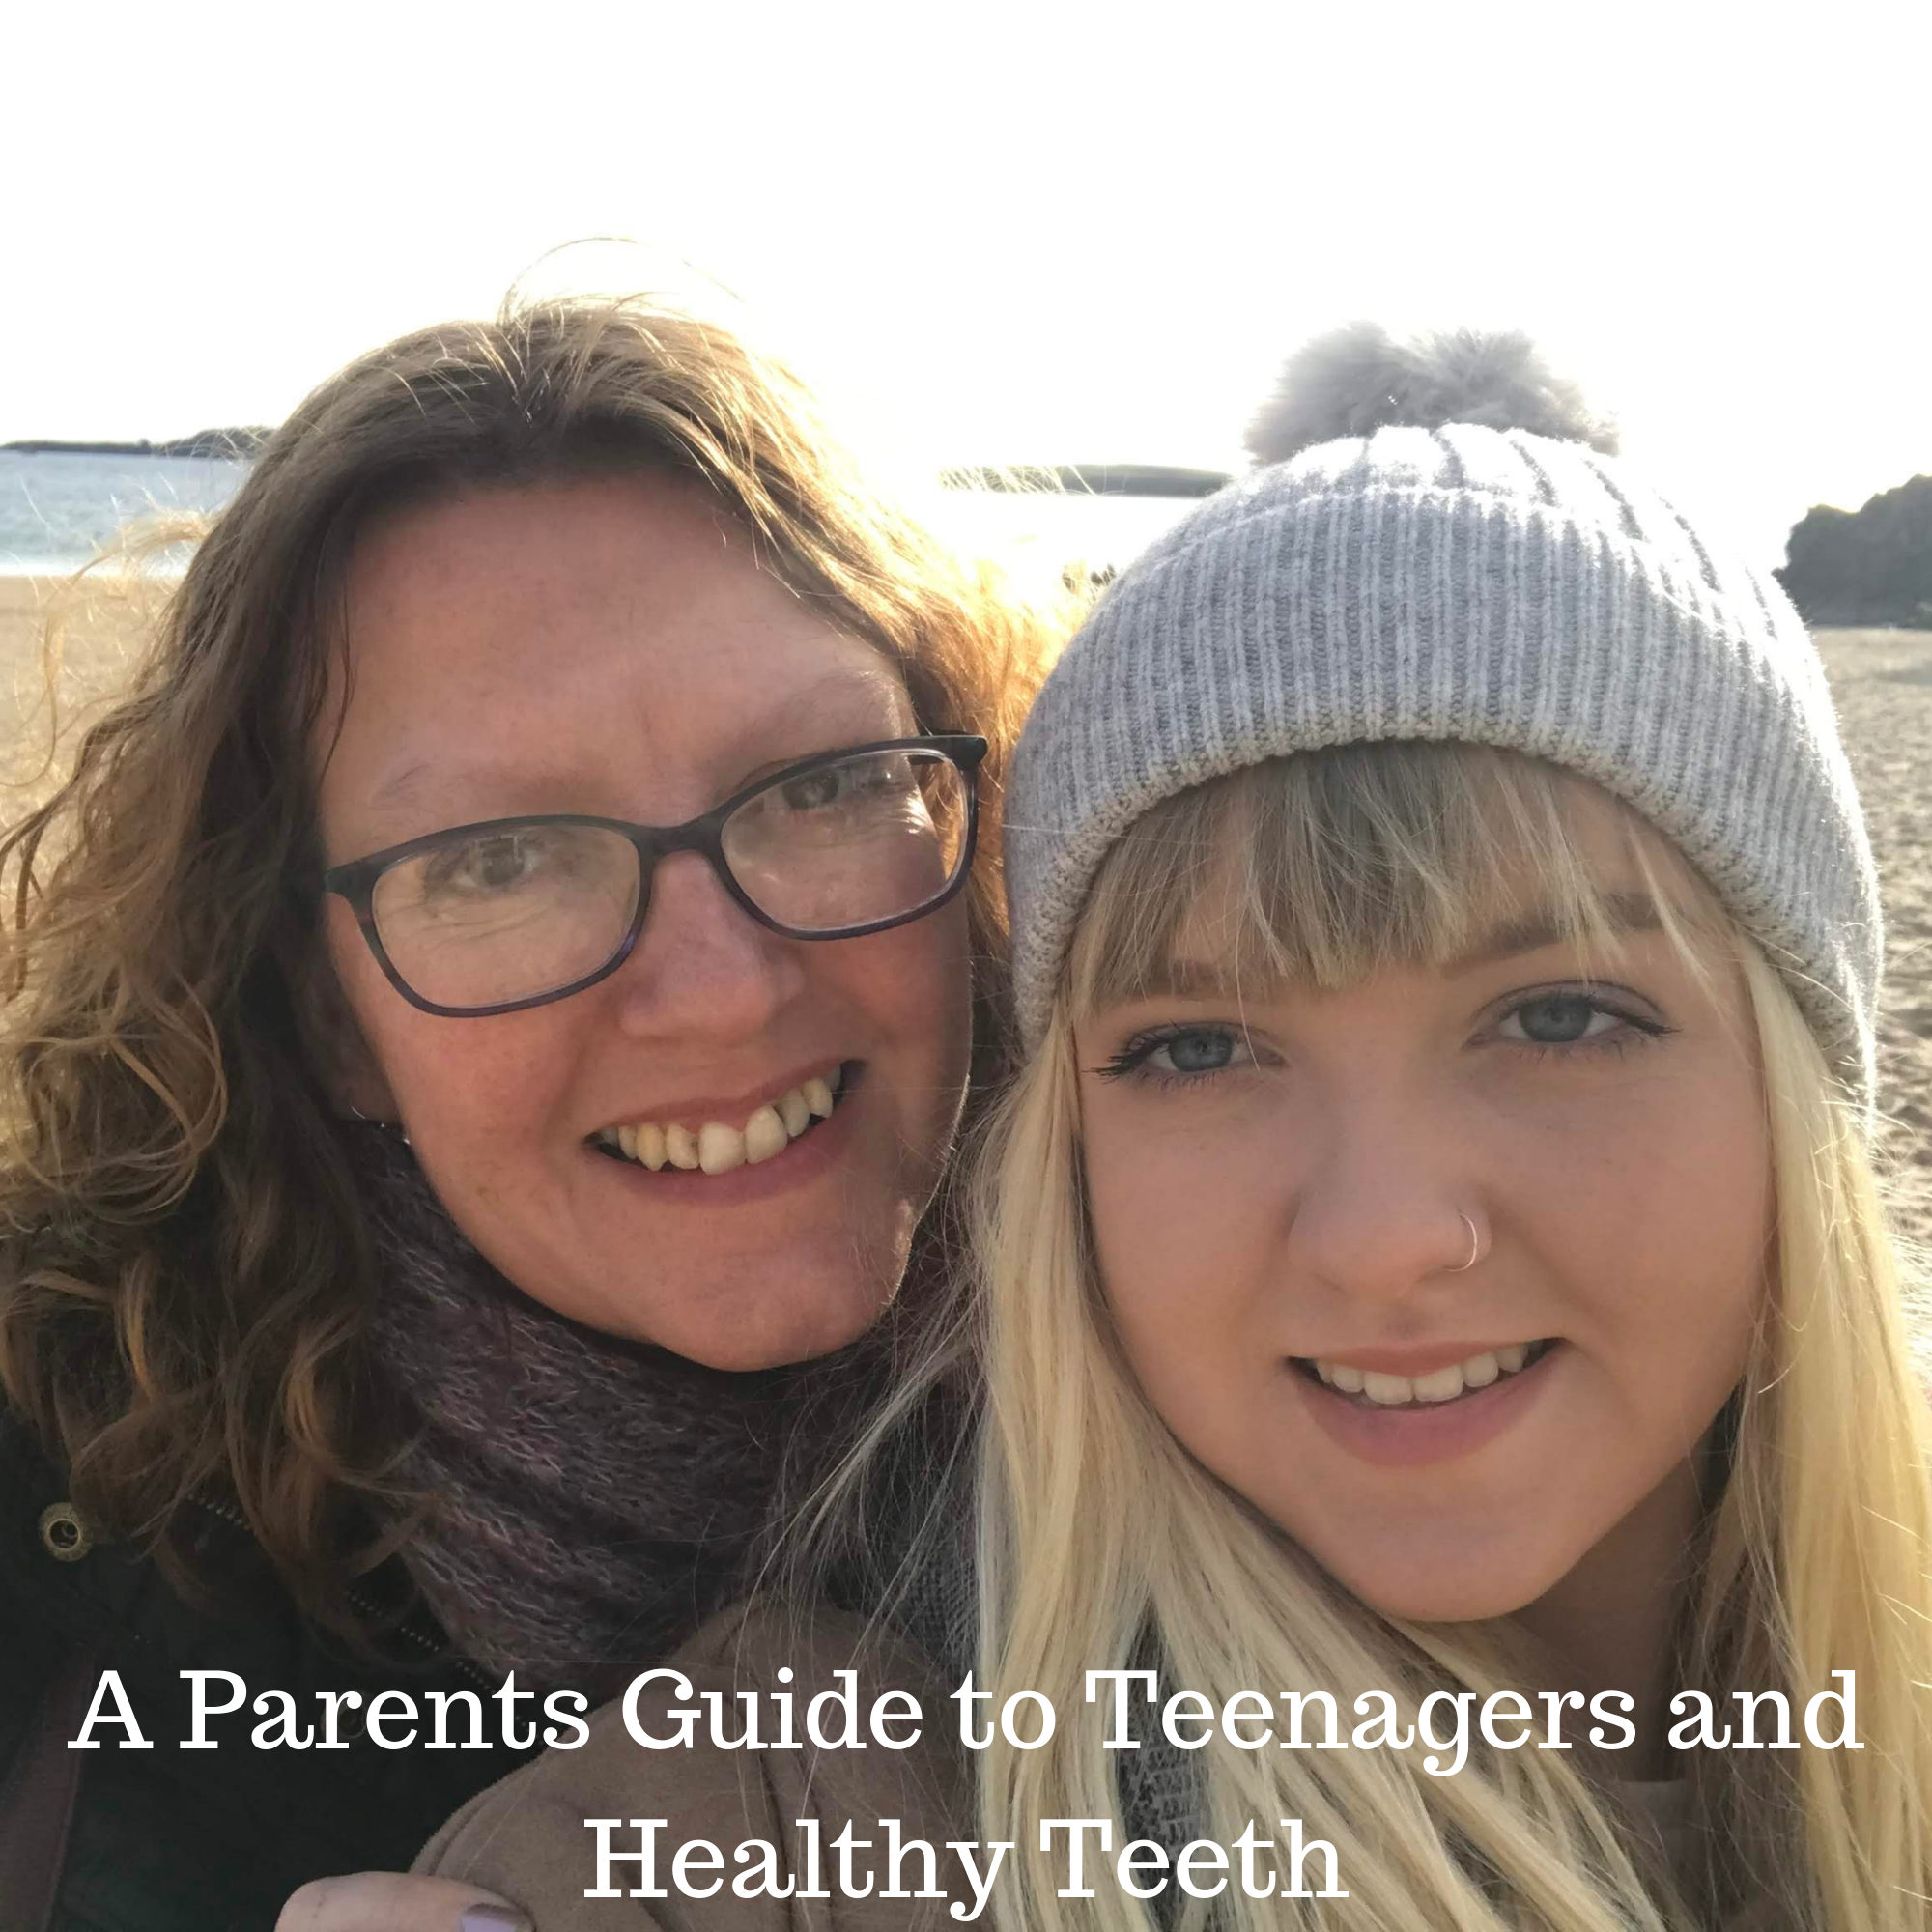 A Parents Guide to Teenagers and Healthy Teeth